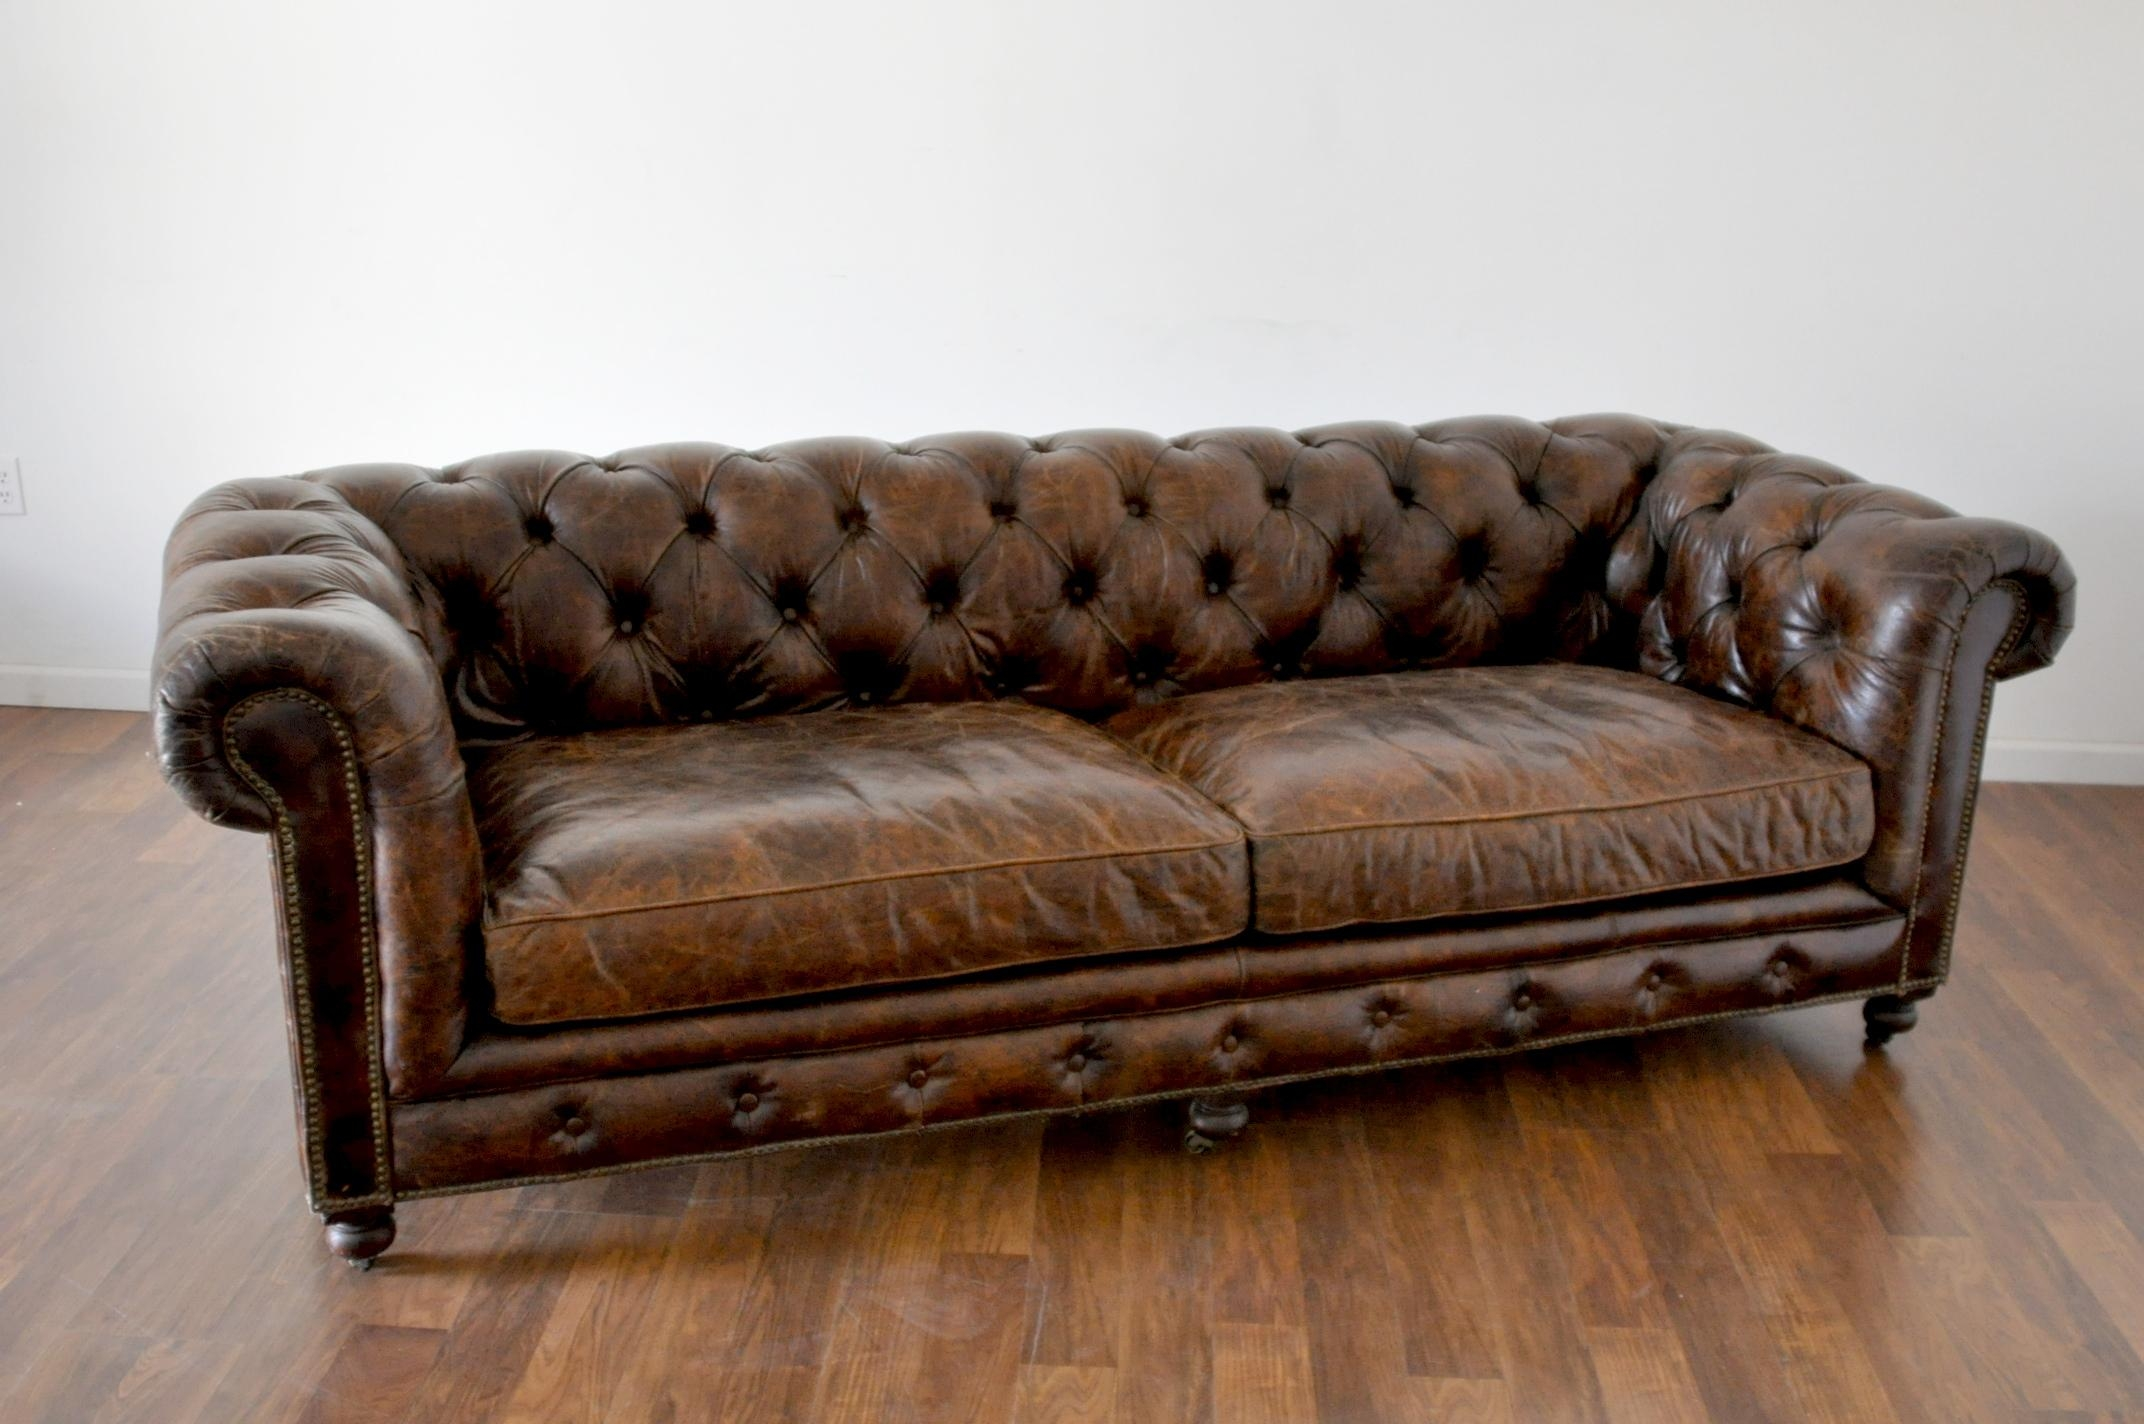 tufted brown leather sofa small sleeper 2018 latest sofas ideas